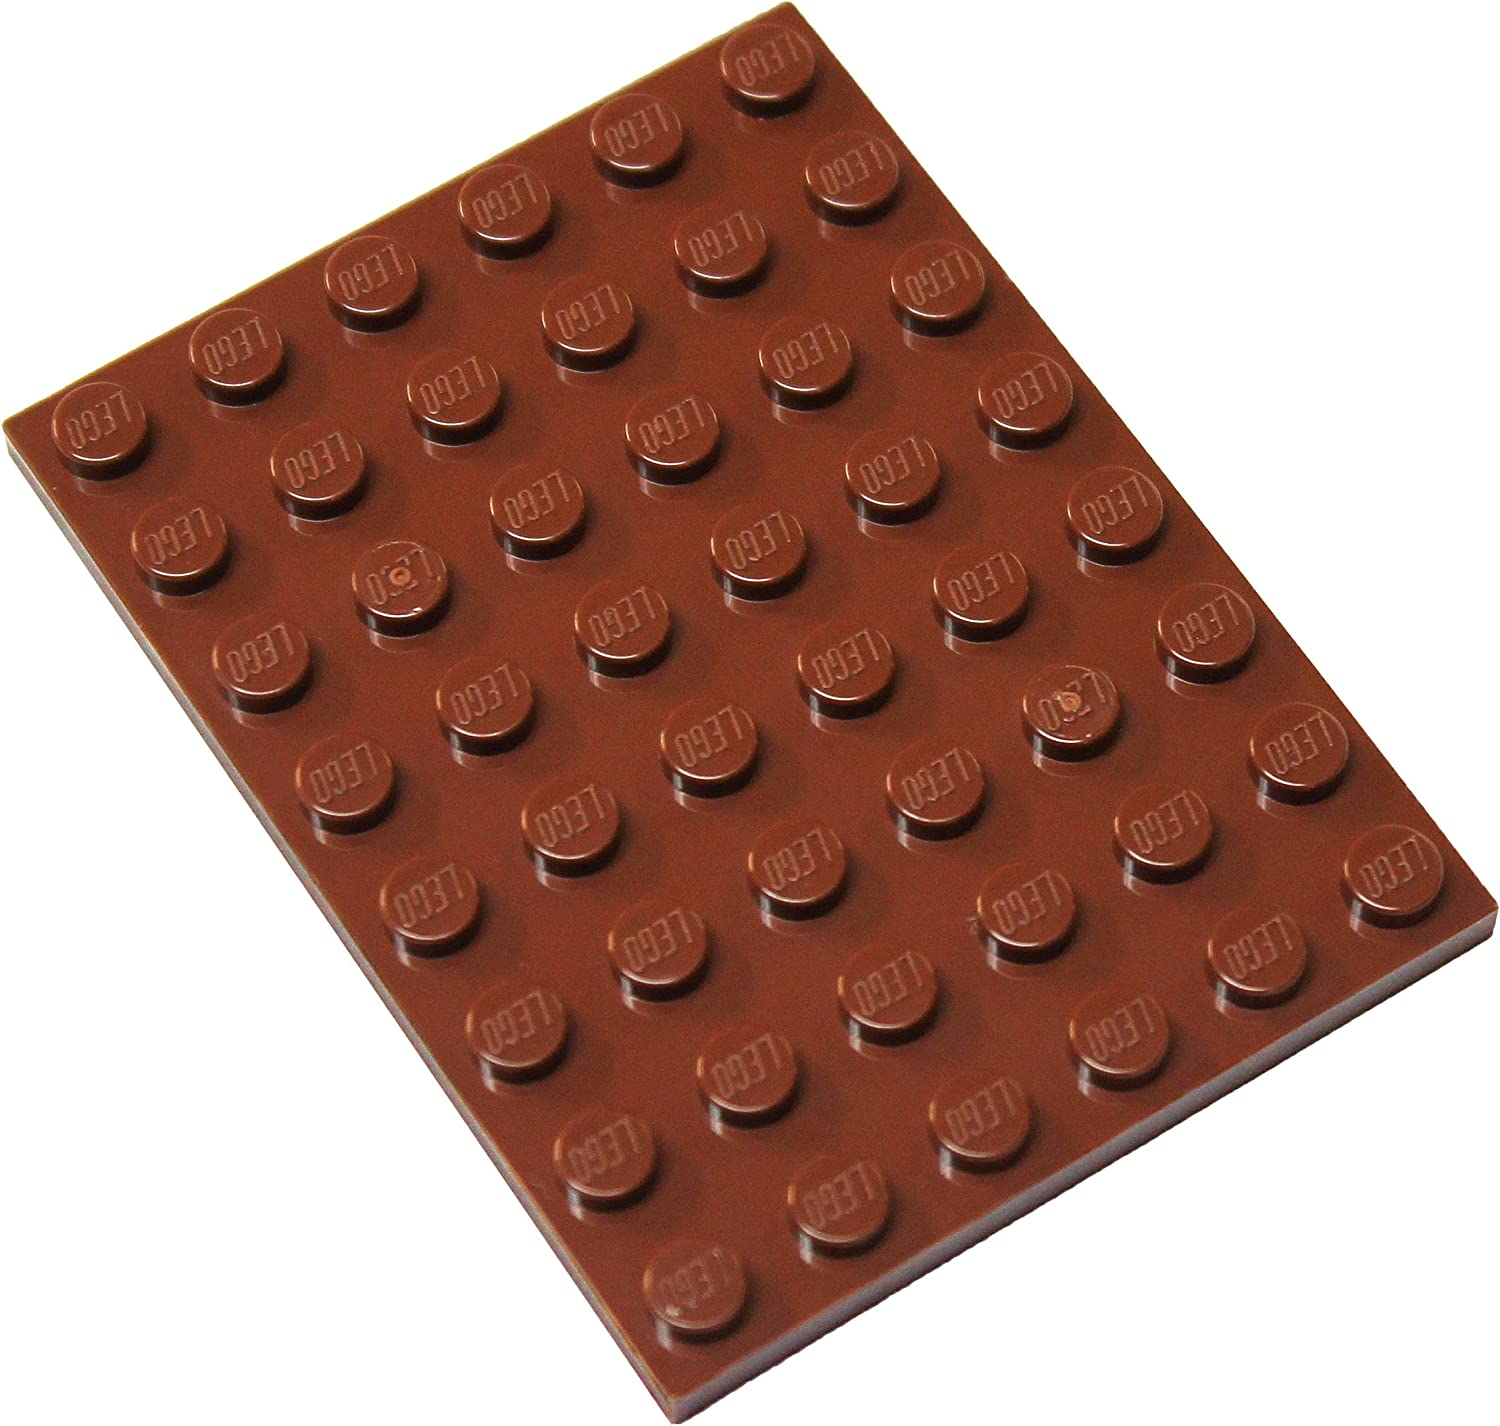 LEGO Parts and Pieces: Reddish Brown 6x8 Plate x4